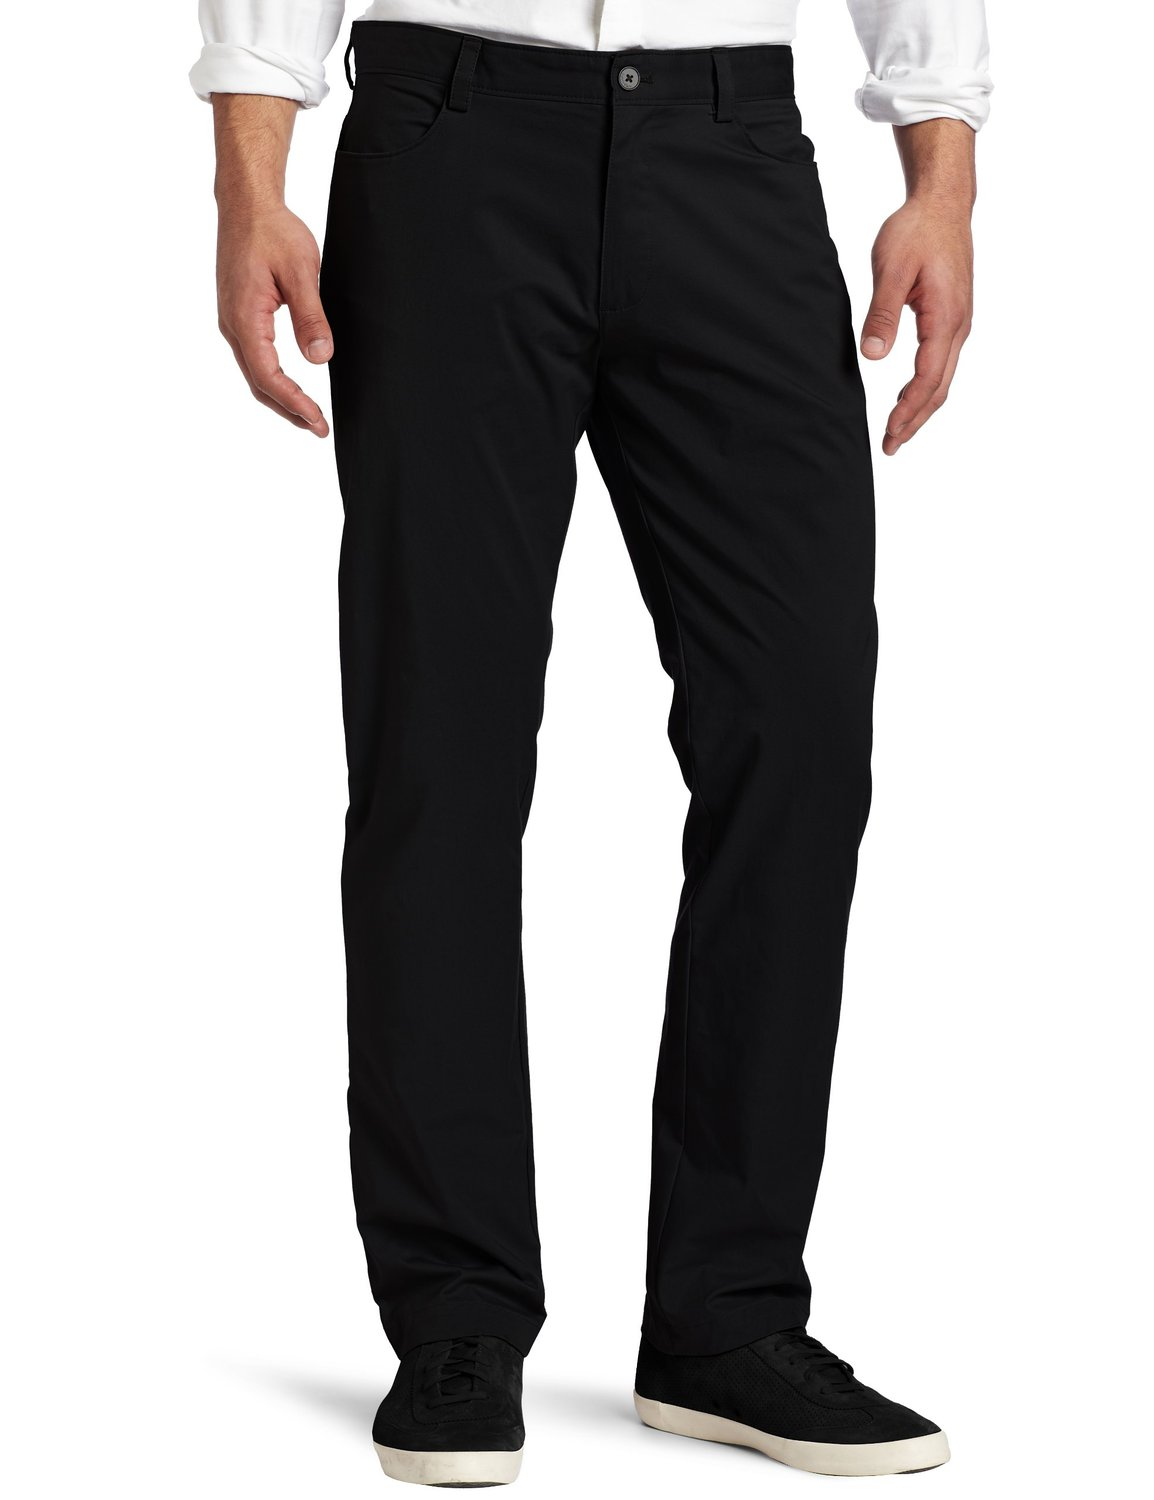 Calvin Klein Men's Slim Fit 4-Pocket Stretch Sateen Pant at Amazon Men's Clothing store